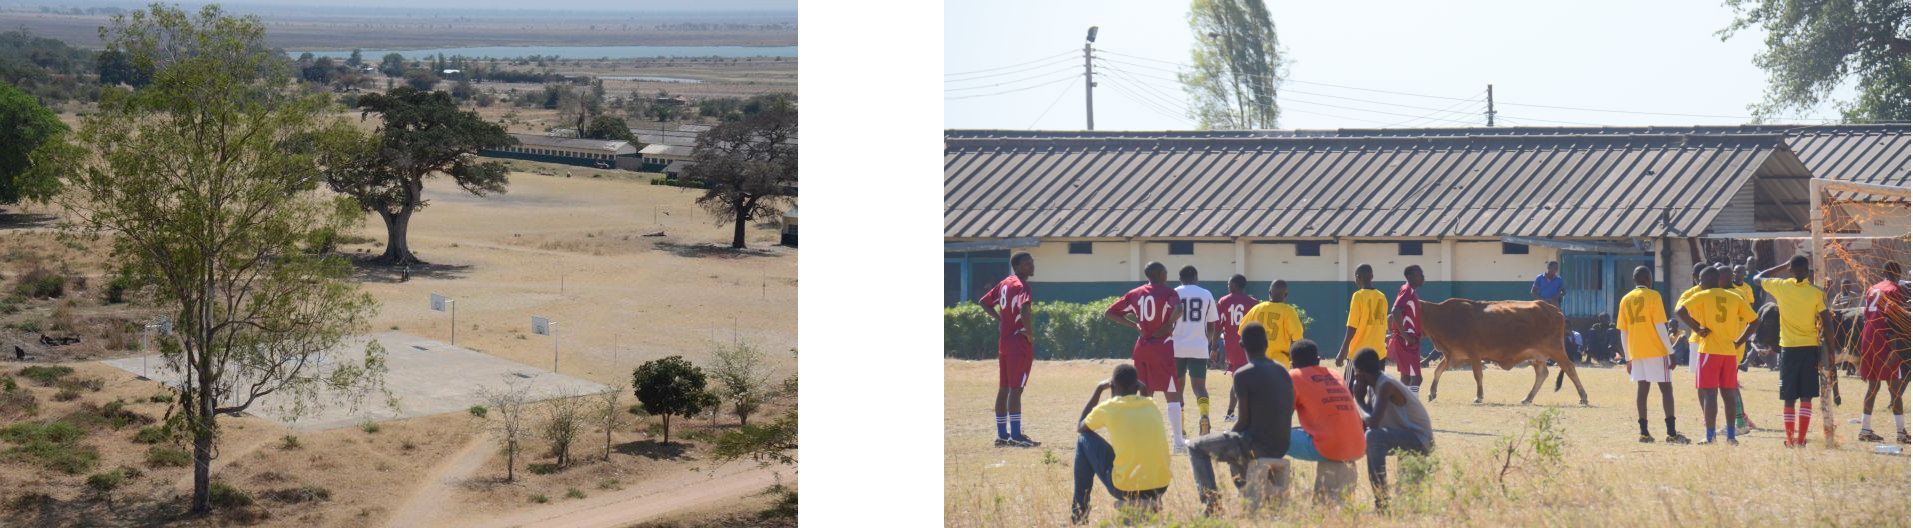 August 2015: Basketball court (left), Football in Namwala